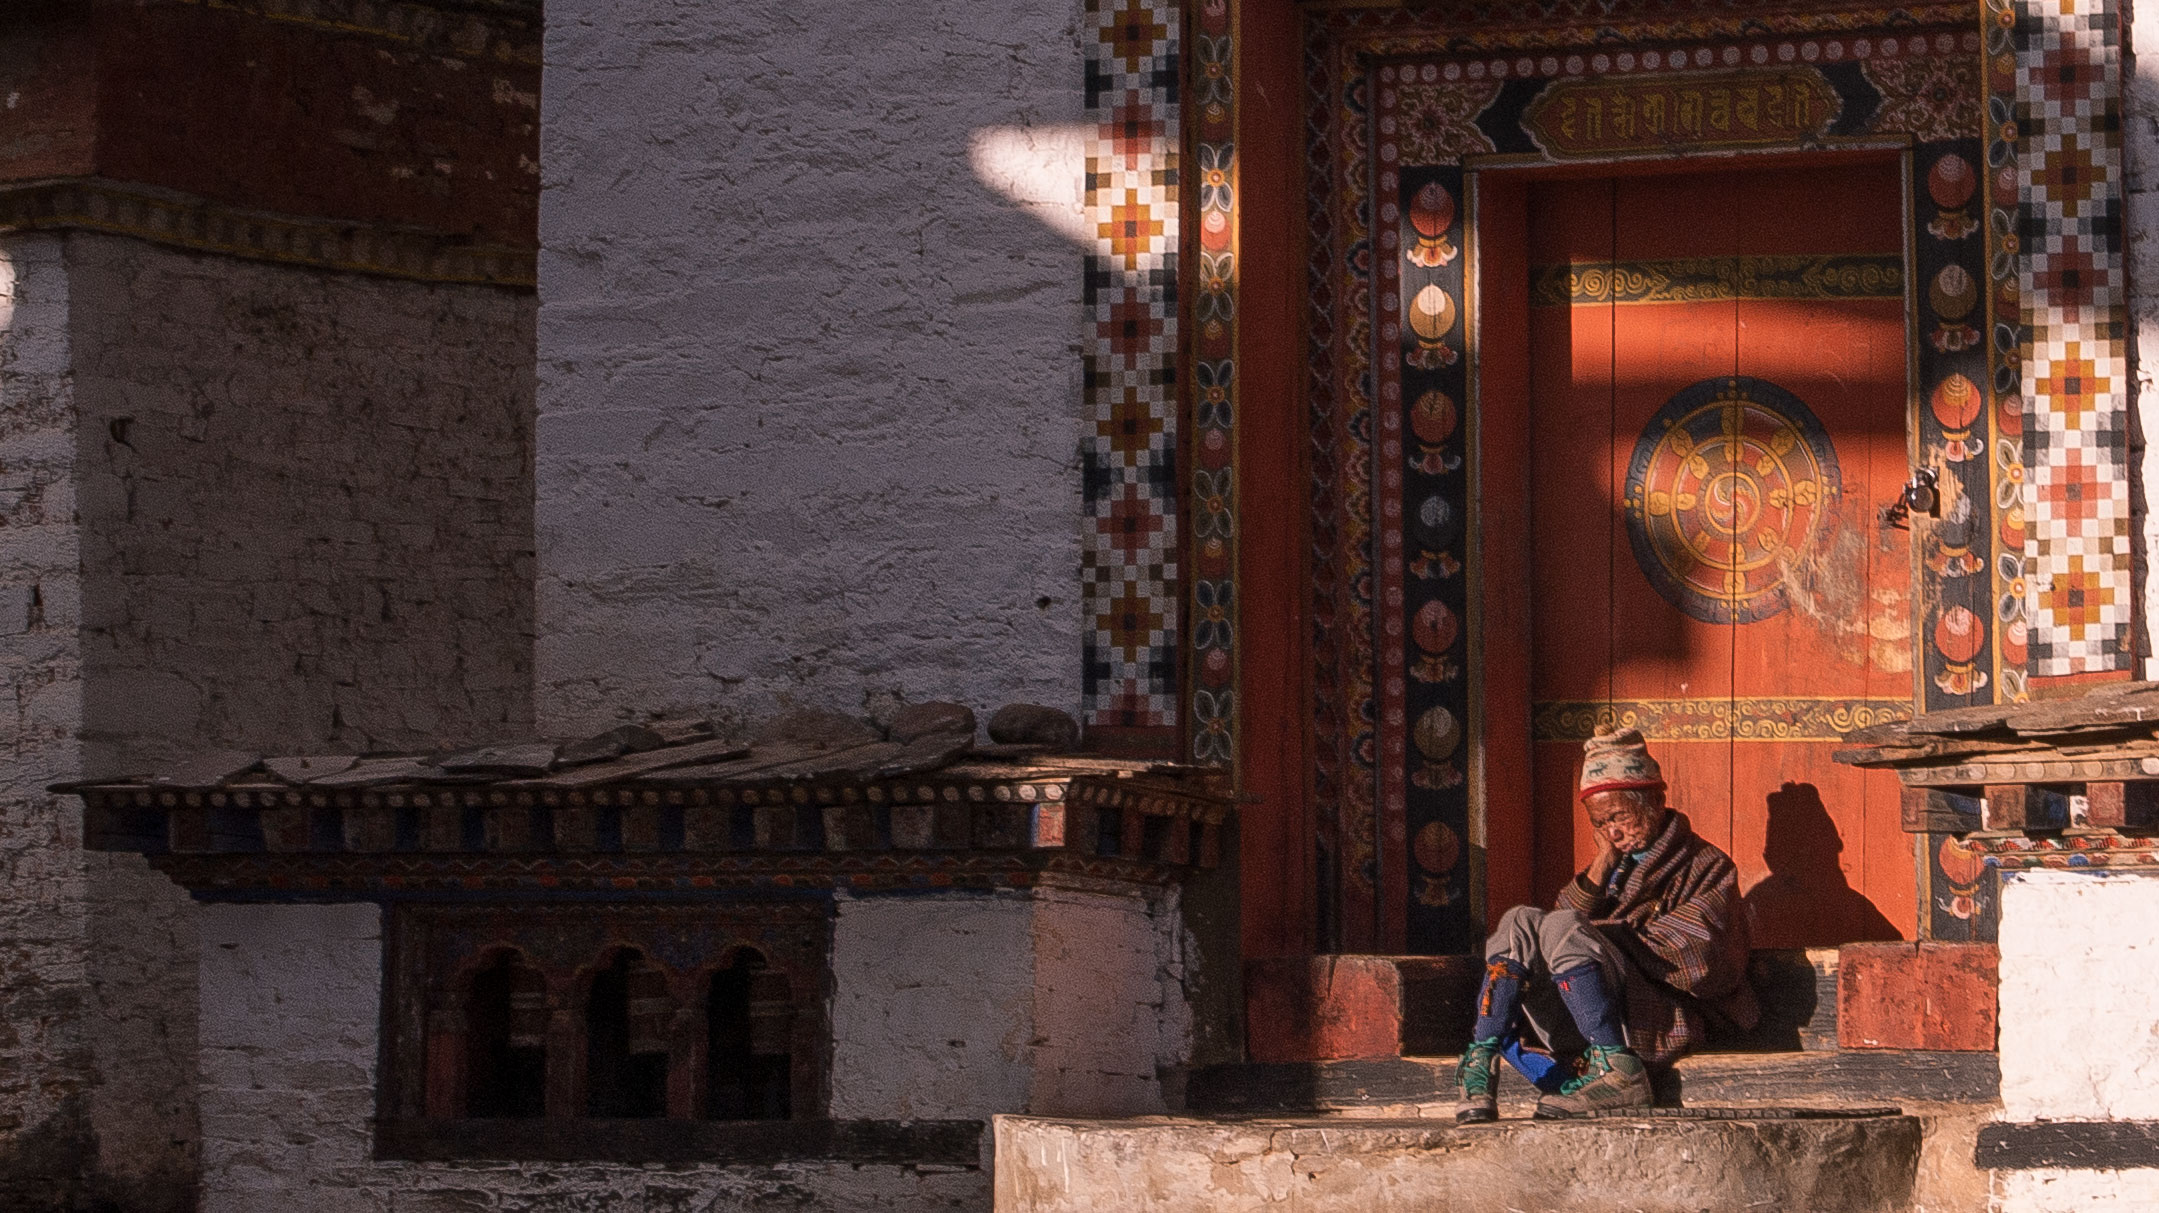 An old man naps in the medieval palace of Tang Orgyencholing, Bhutan,